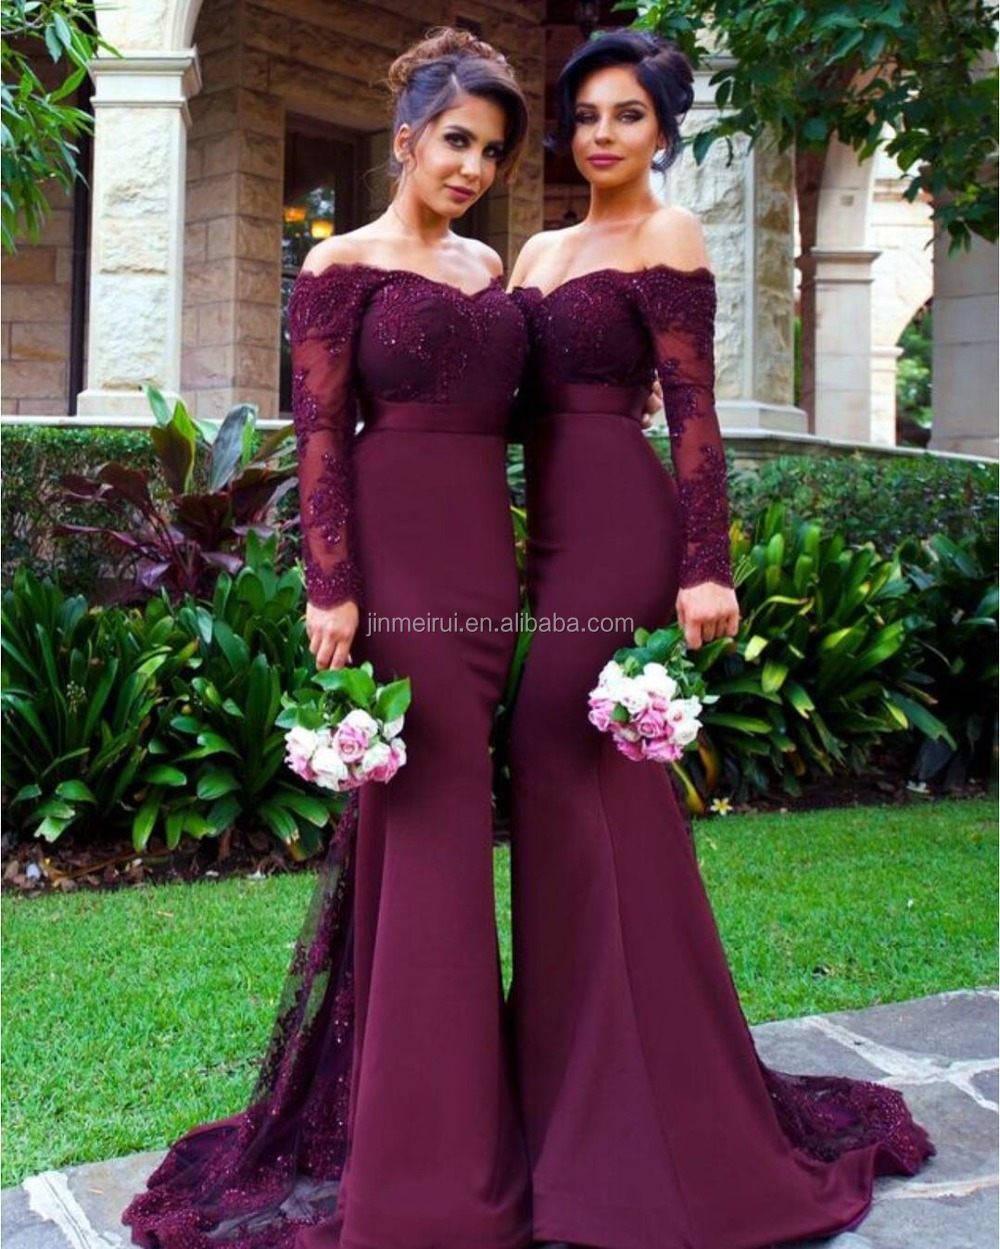 Real Pictures Off-The-Shoulder Wedding Party Dress Beaded Backless Satin Sleeveless Mermaid Bridesmaid Dress